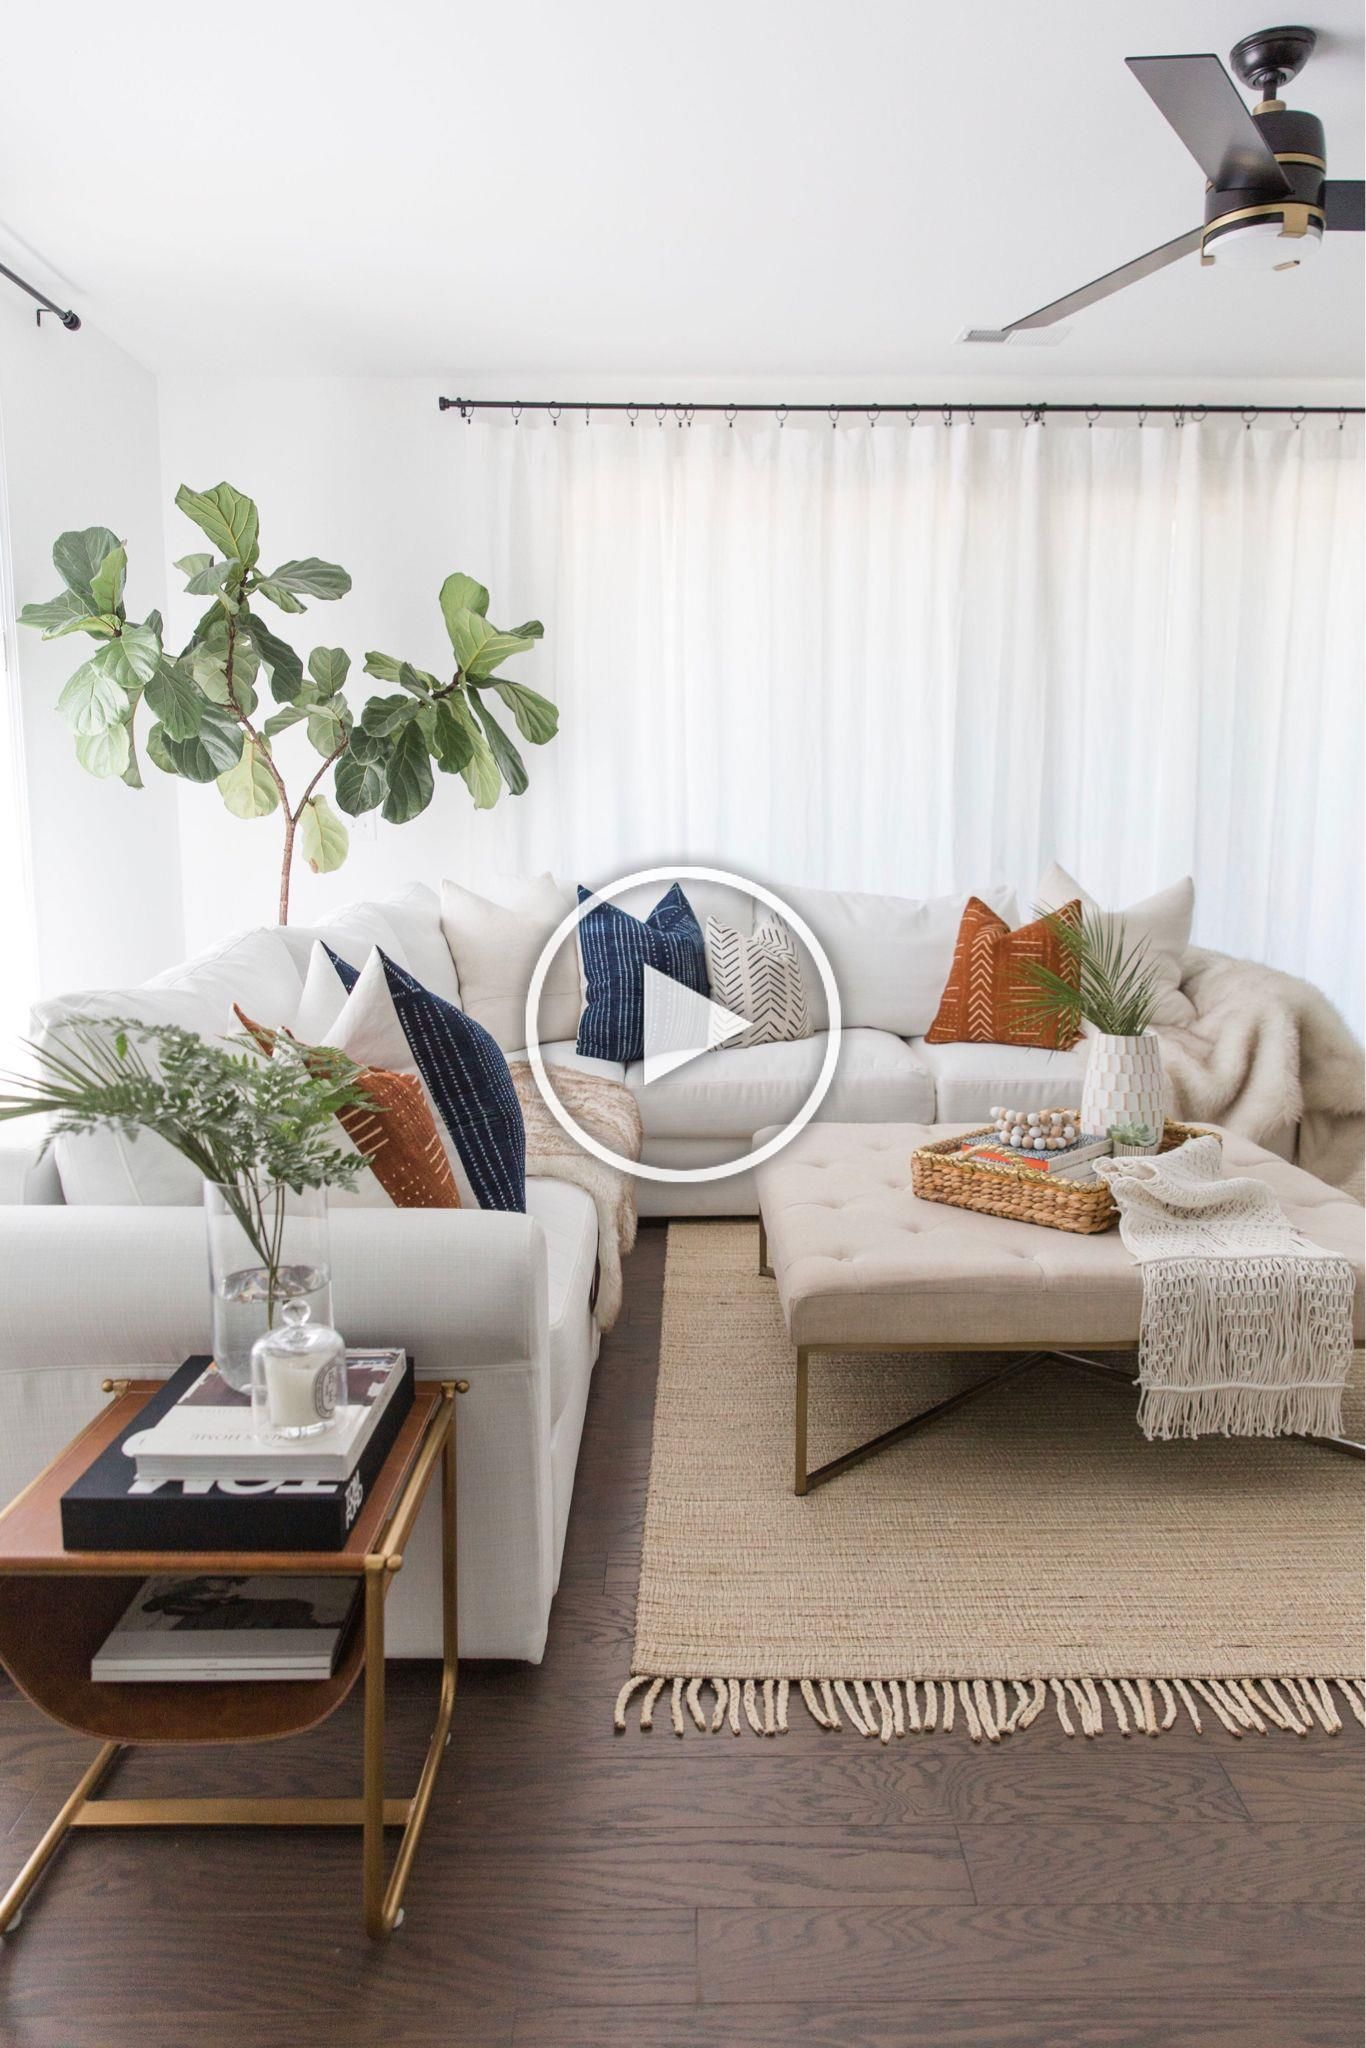 Click the photo to instantly shop the living room details and